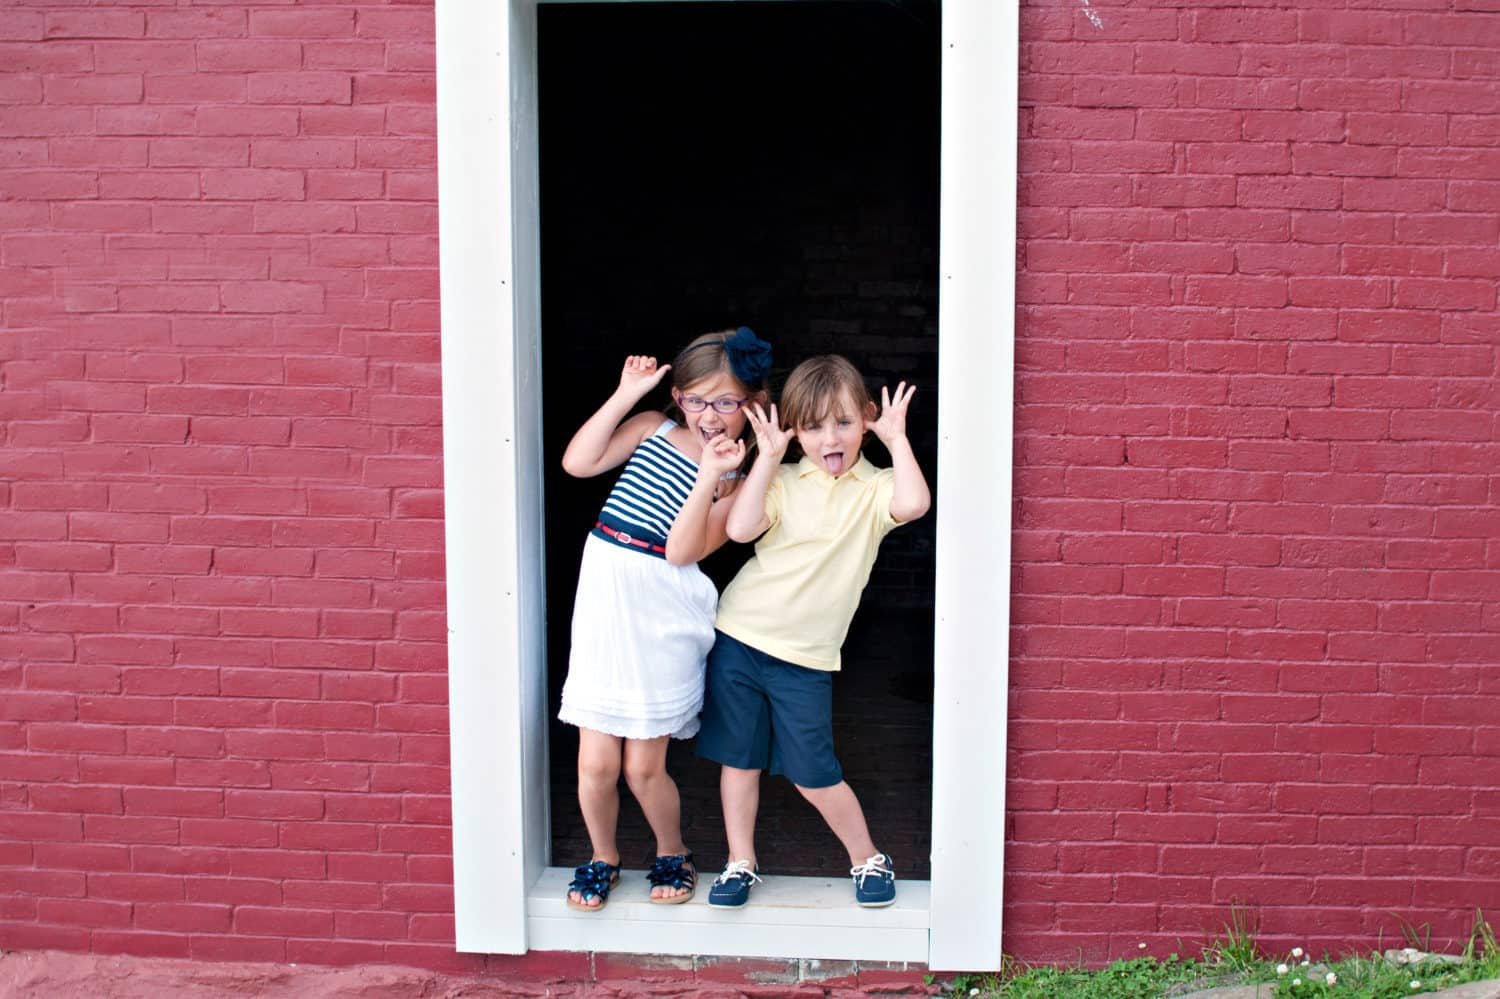 Young siblings standing in a doorway making funny faces